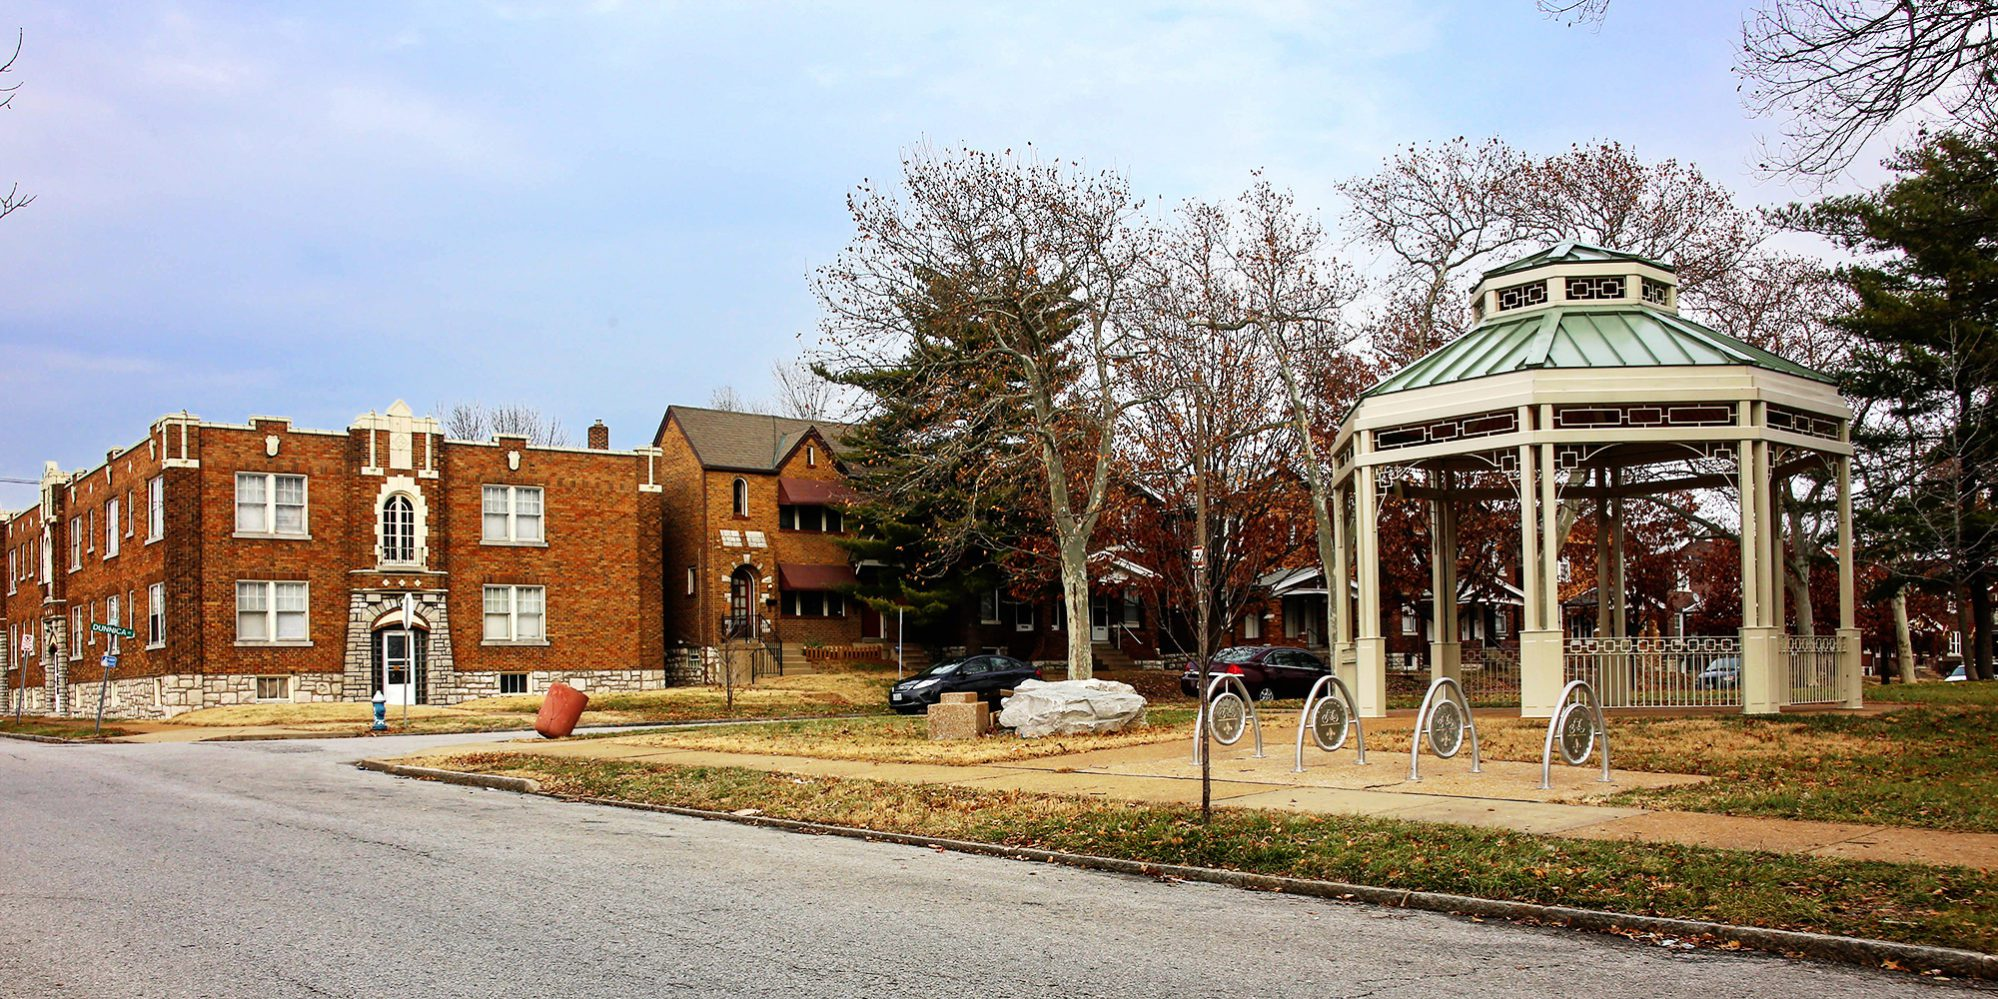 Amberg Park in the Dutchtown neighborhood of St. Louis, MO. Photo by Paul Sableman.